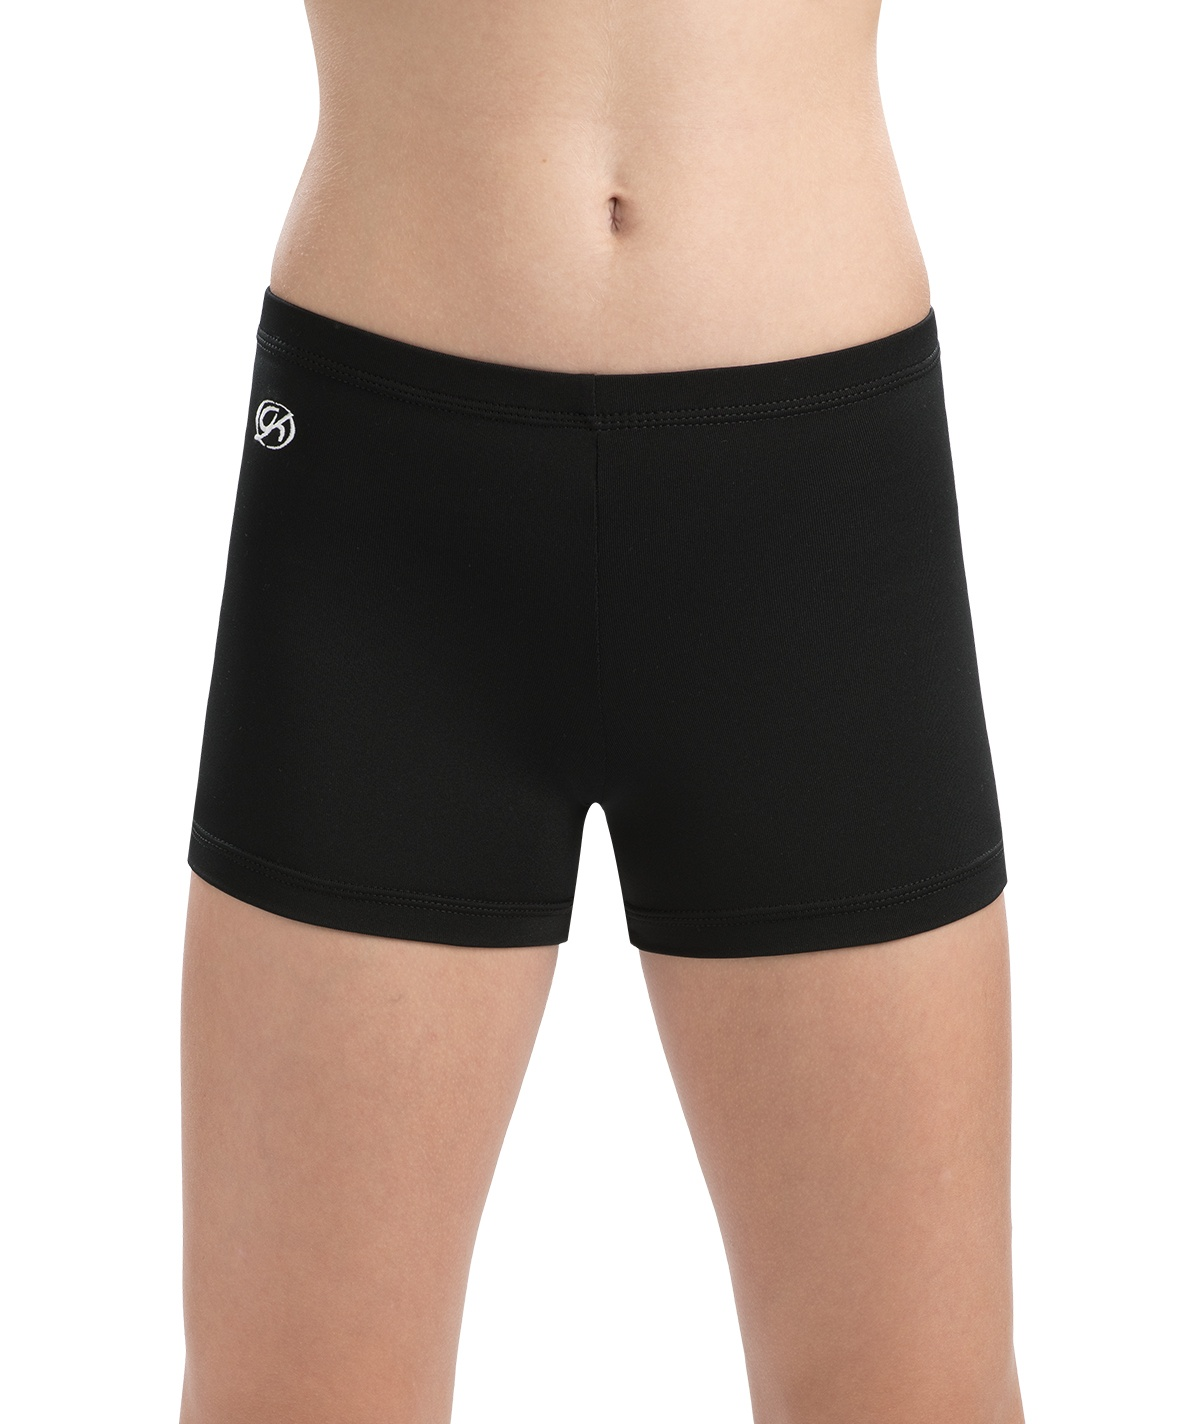 GK All Star DryTech Cheerleading Shorts